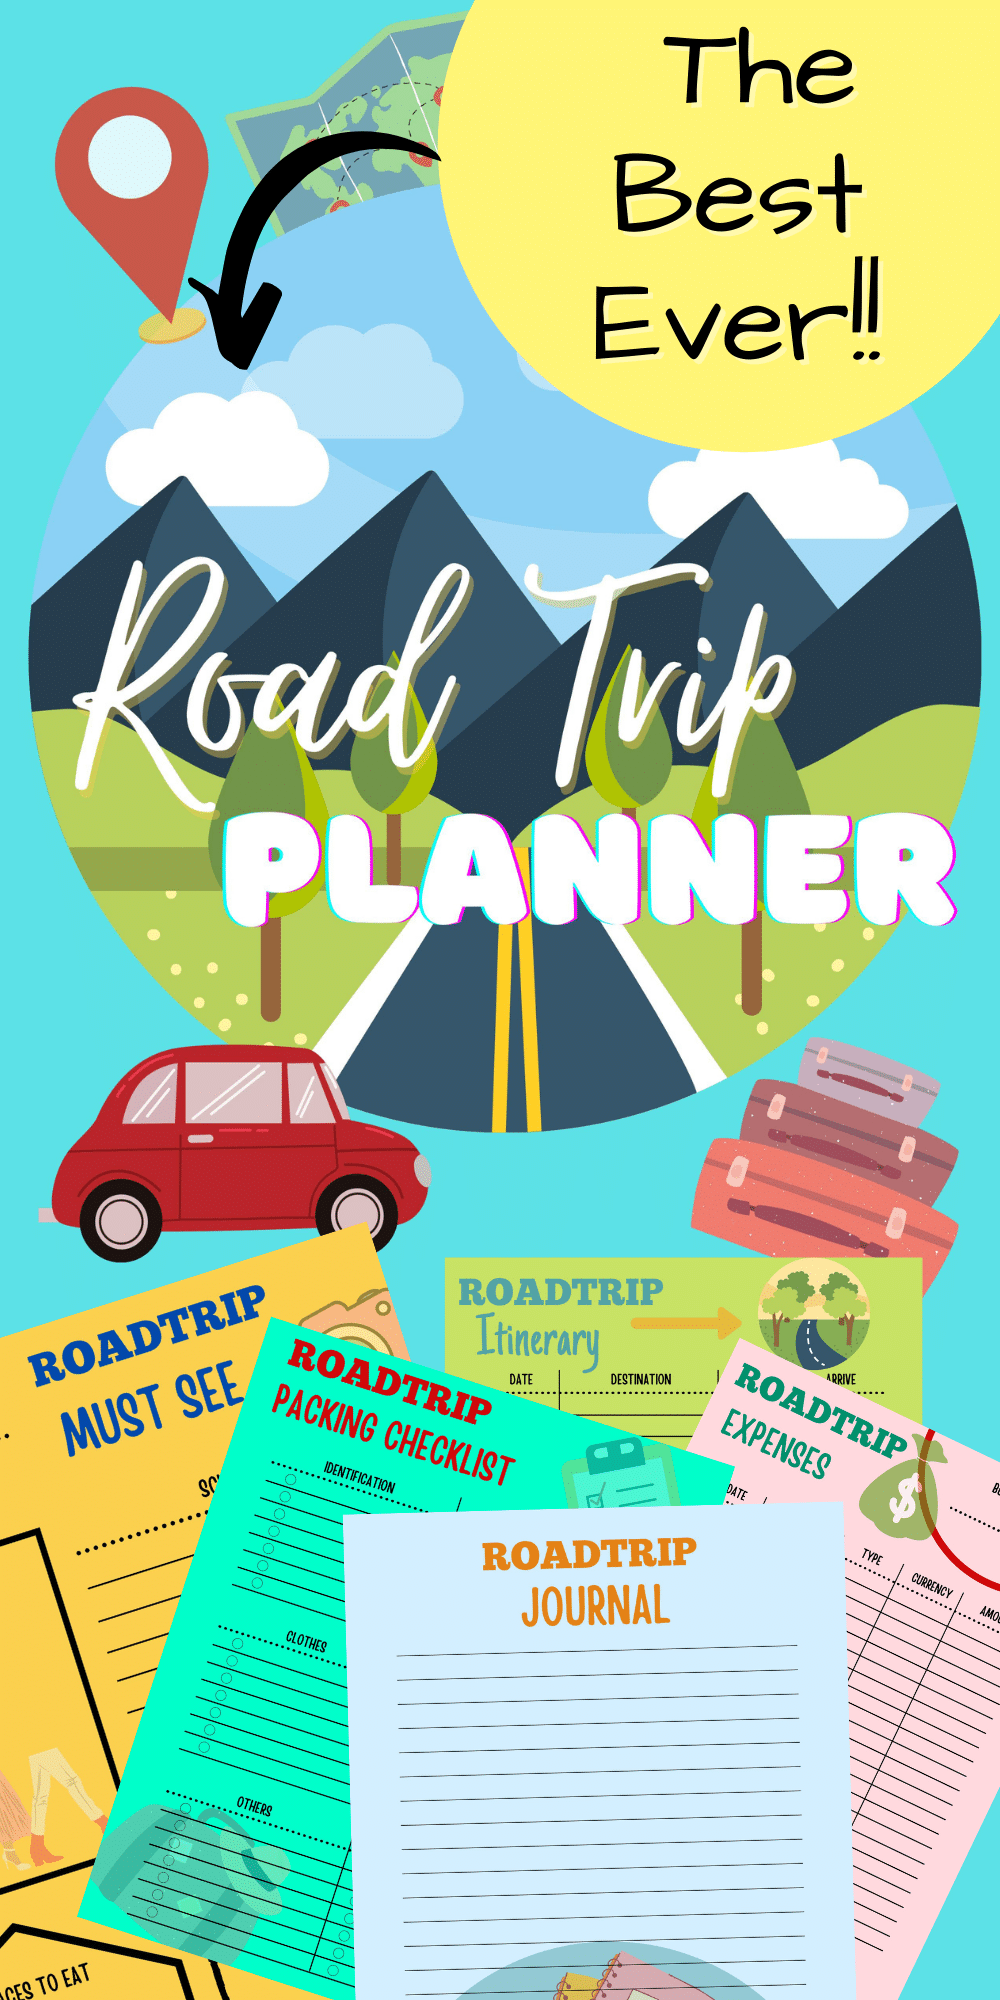 Before you hit the road, it's a good idea to take some time to plan out your trip. And with the help of this printable road trip planner, you can keep your vacation plans neat and organized in one handy place! via @petroneagu